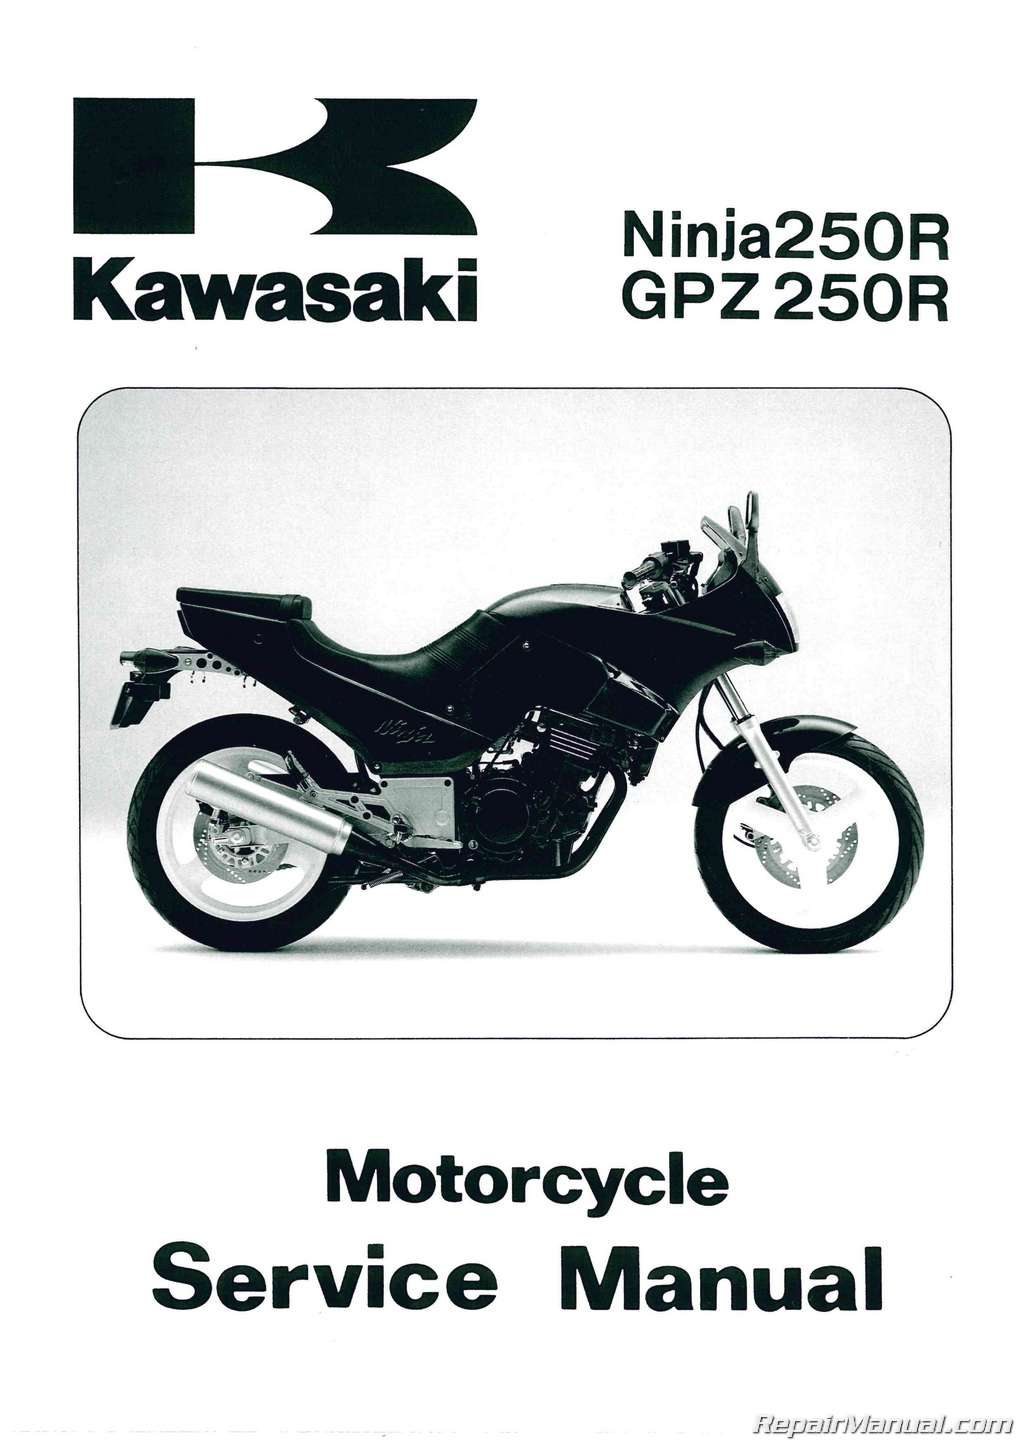 Official 1986 2007 Kawasaki Ex250 Ninja El250 Eliminator Factory Service Manual 99924 1066 01 on kawasaki lawn mower oil filters